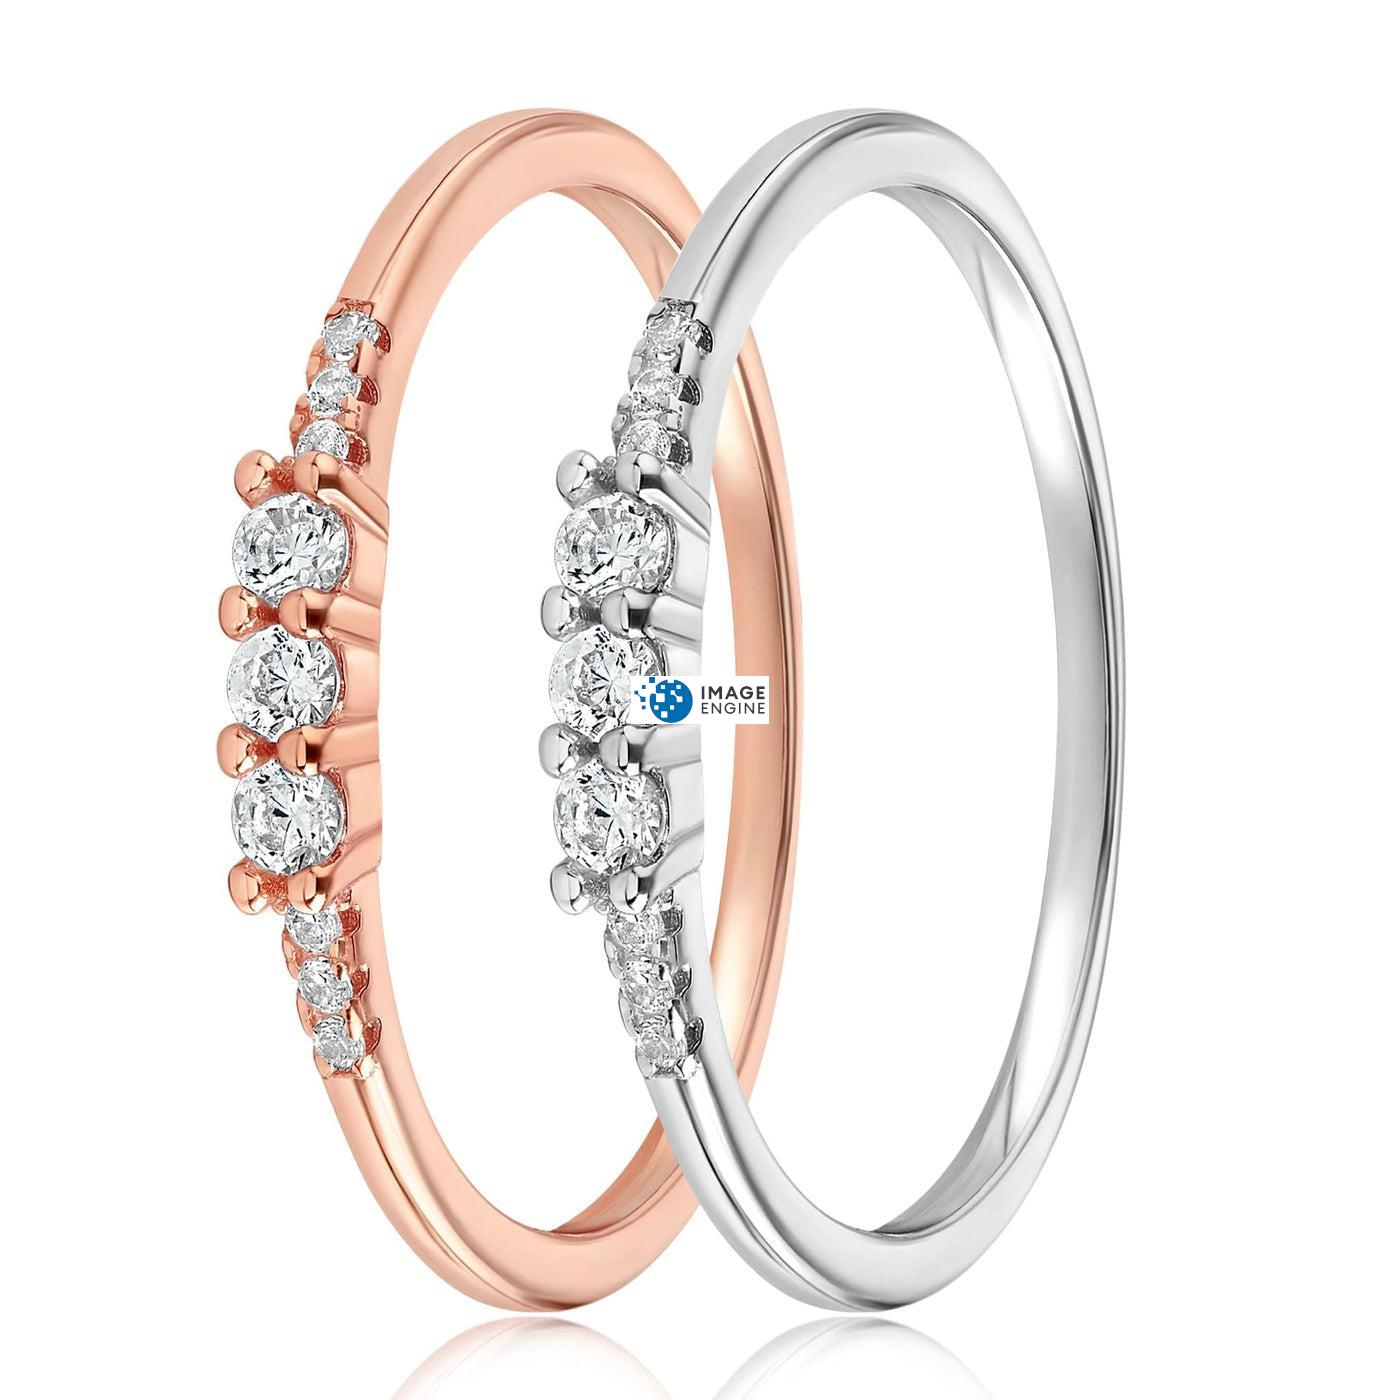 Emie Ring - Side by Side - 925 Sterling Silver and 18K Rose Gold Vermeil